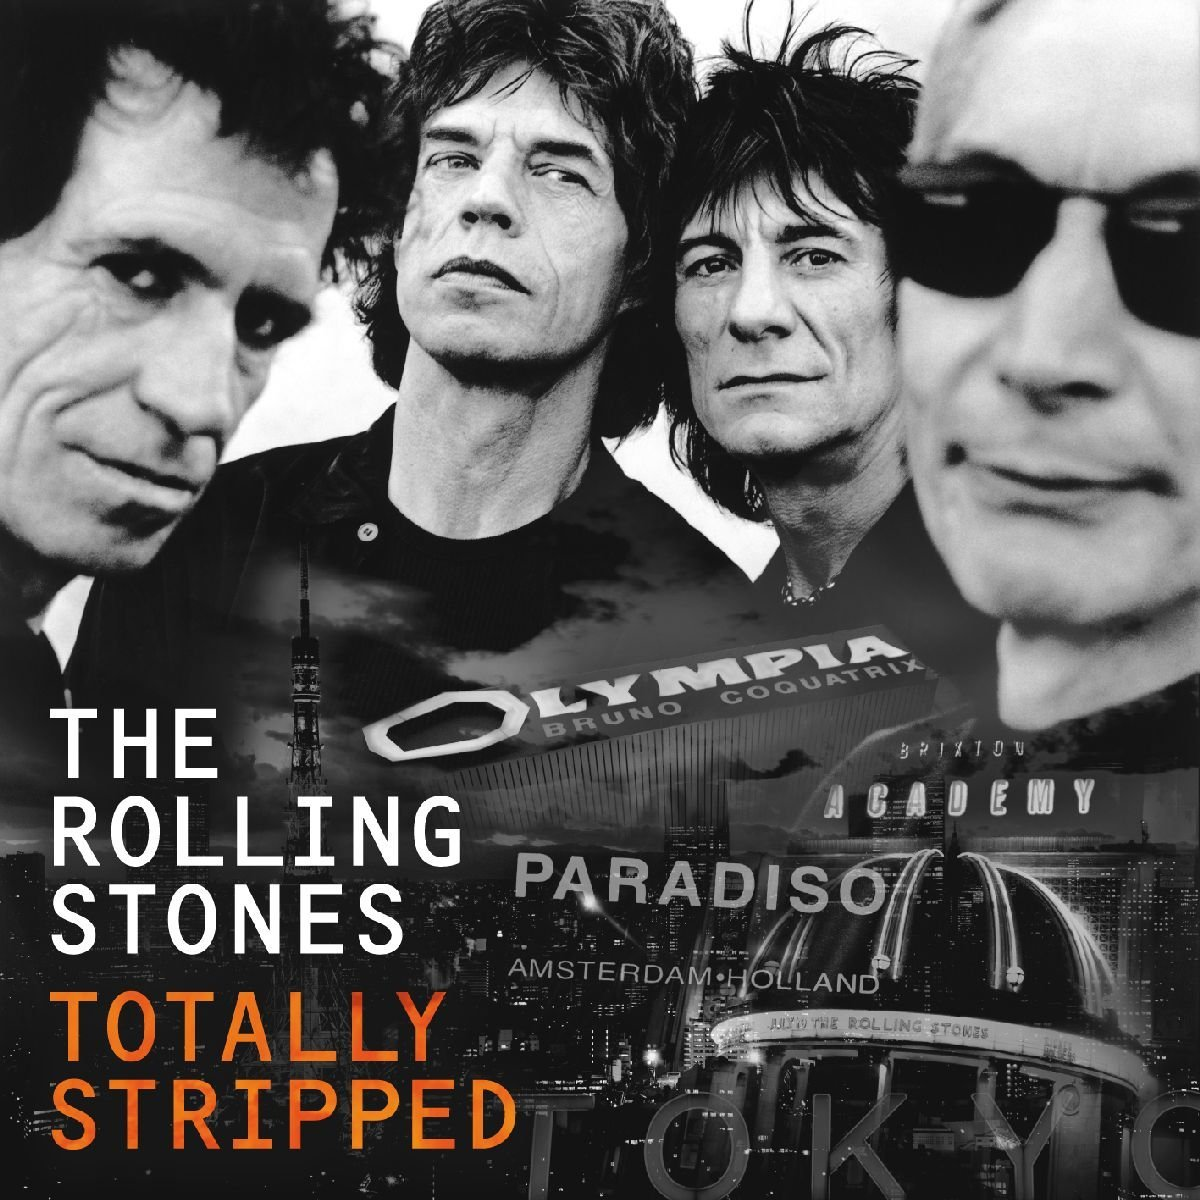 The Rolling Stones / Totally Stripped